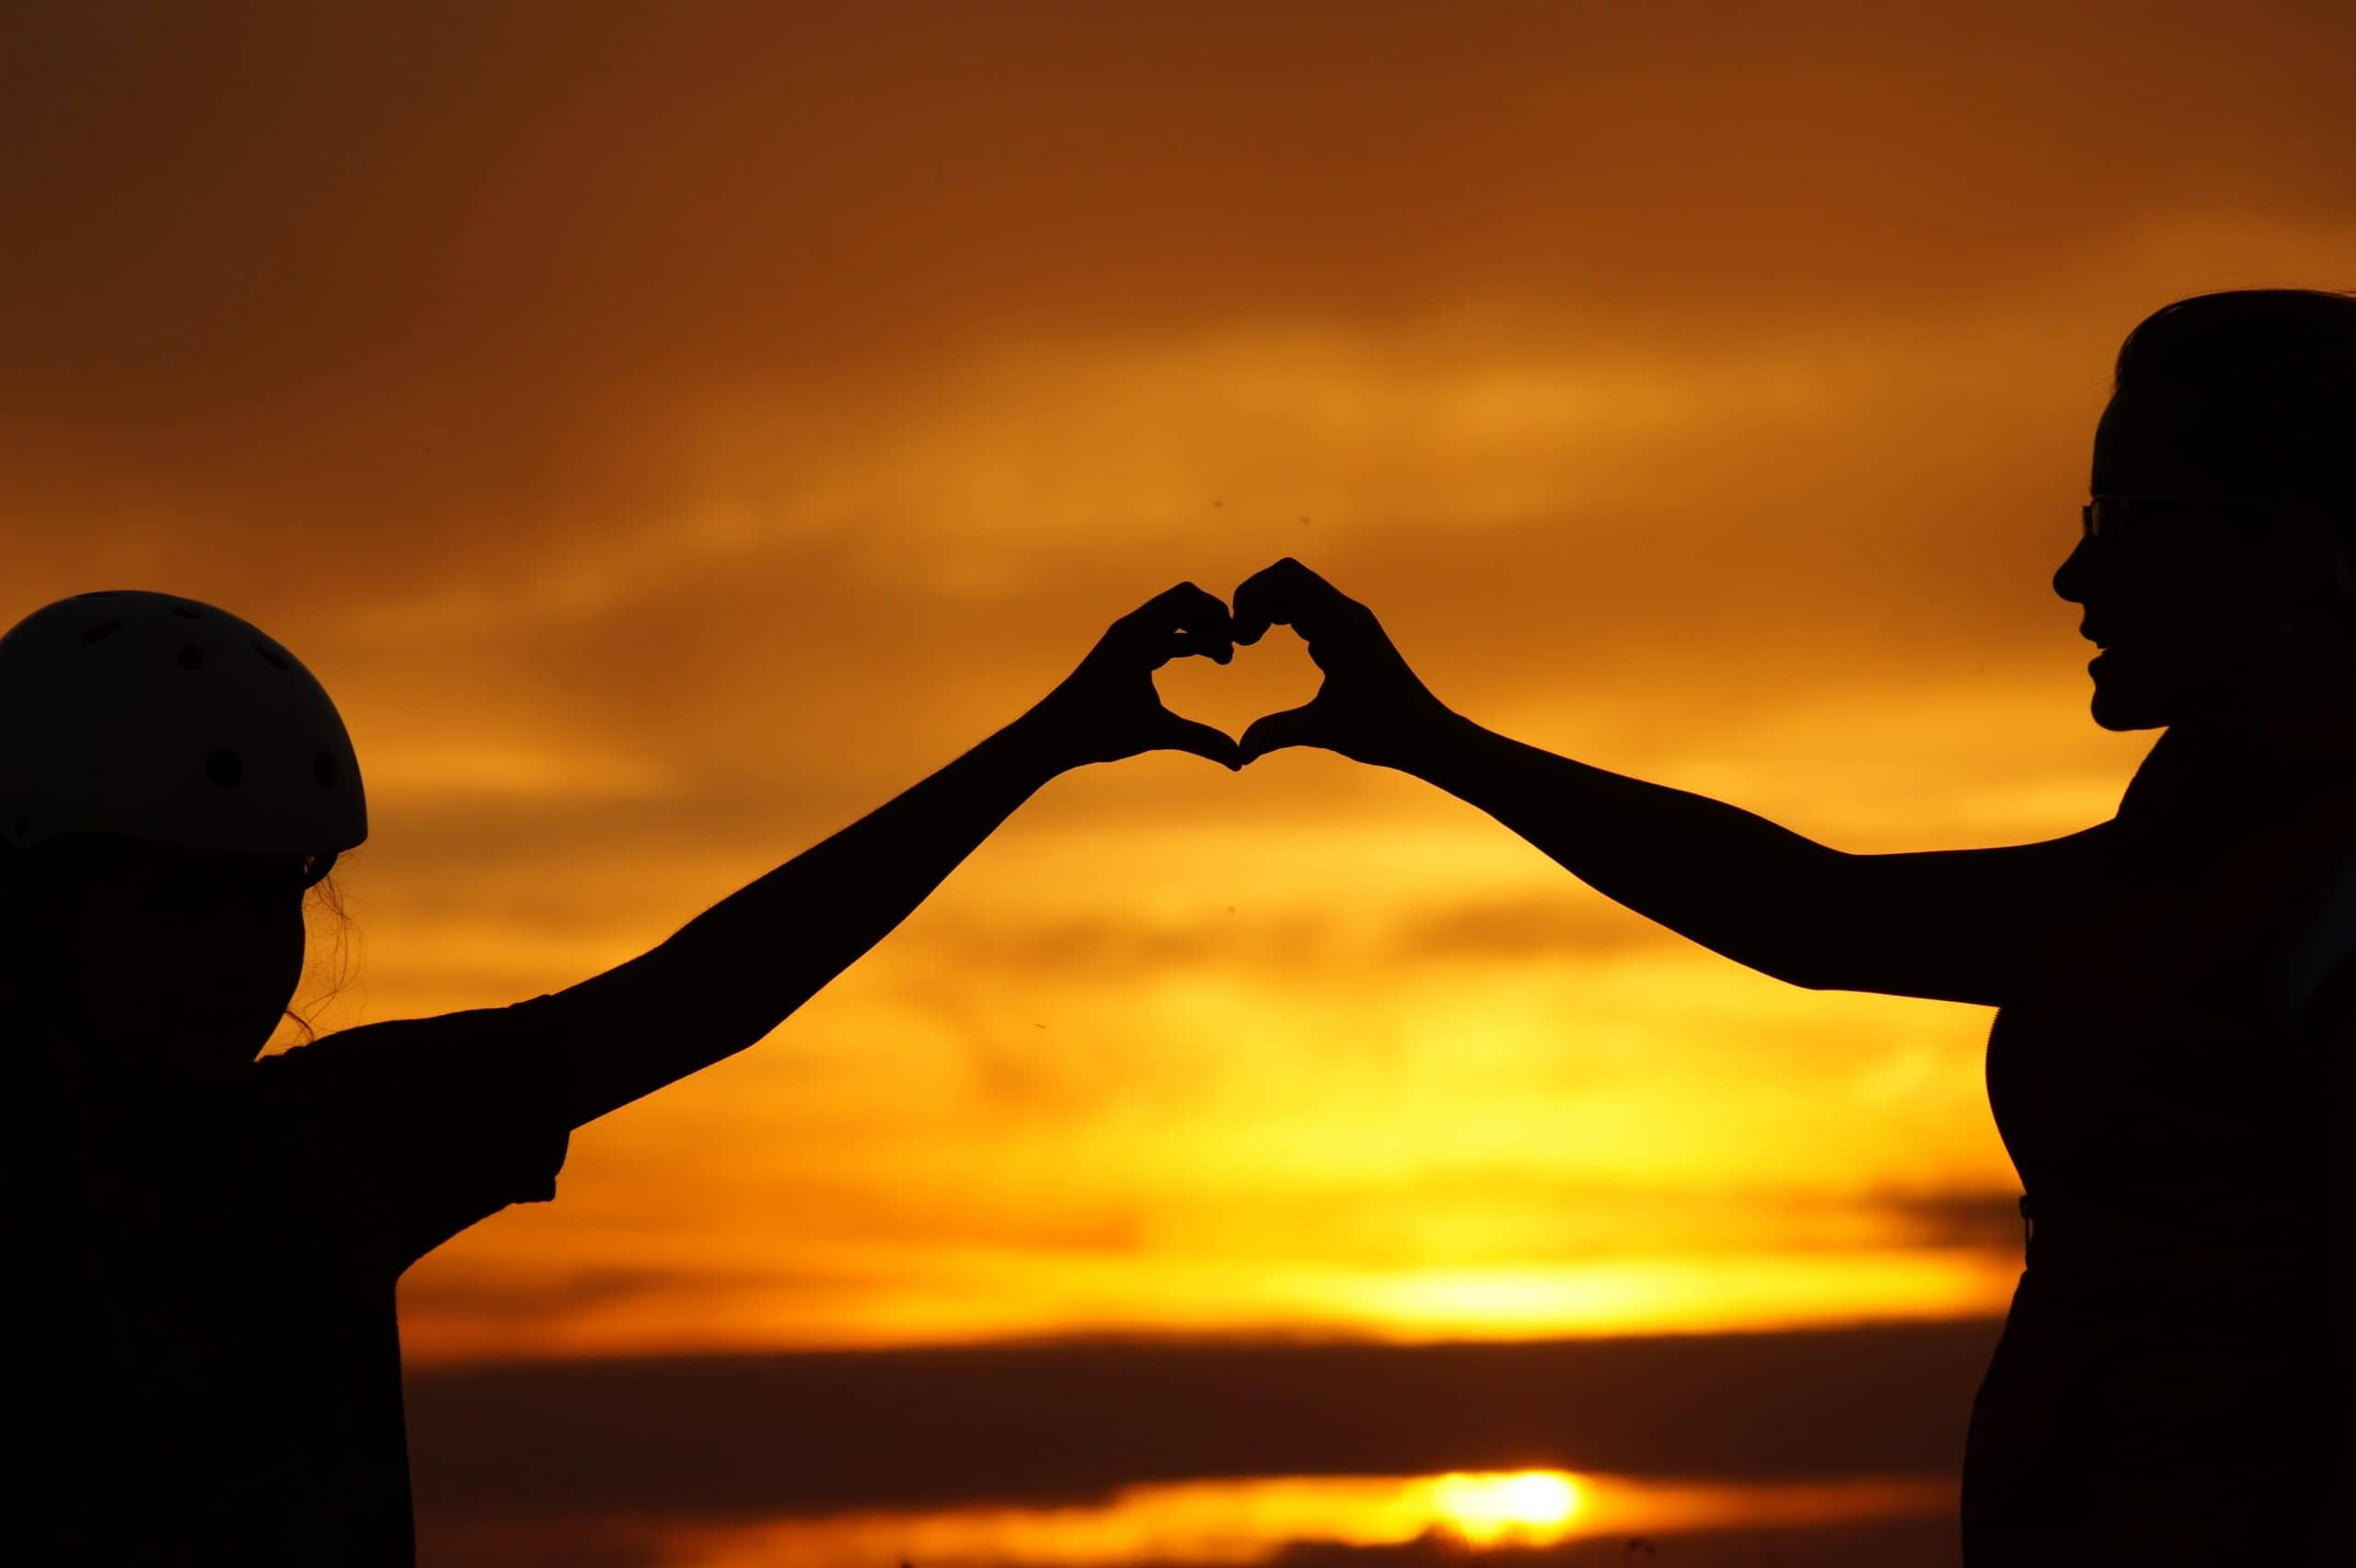 couple on the beach holding arms up and creating joined heart shape at sundown